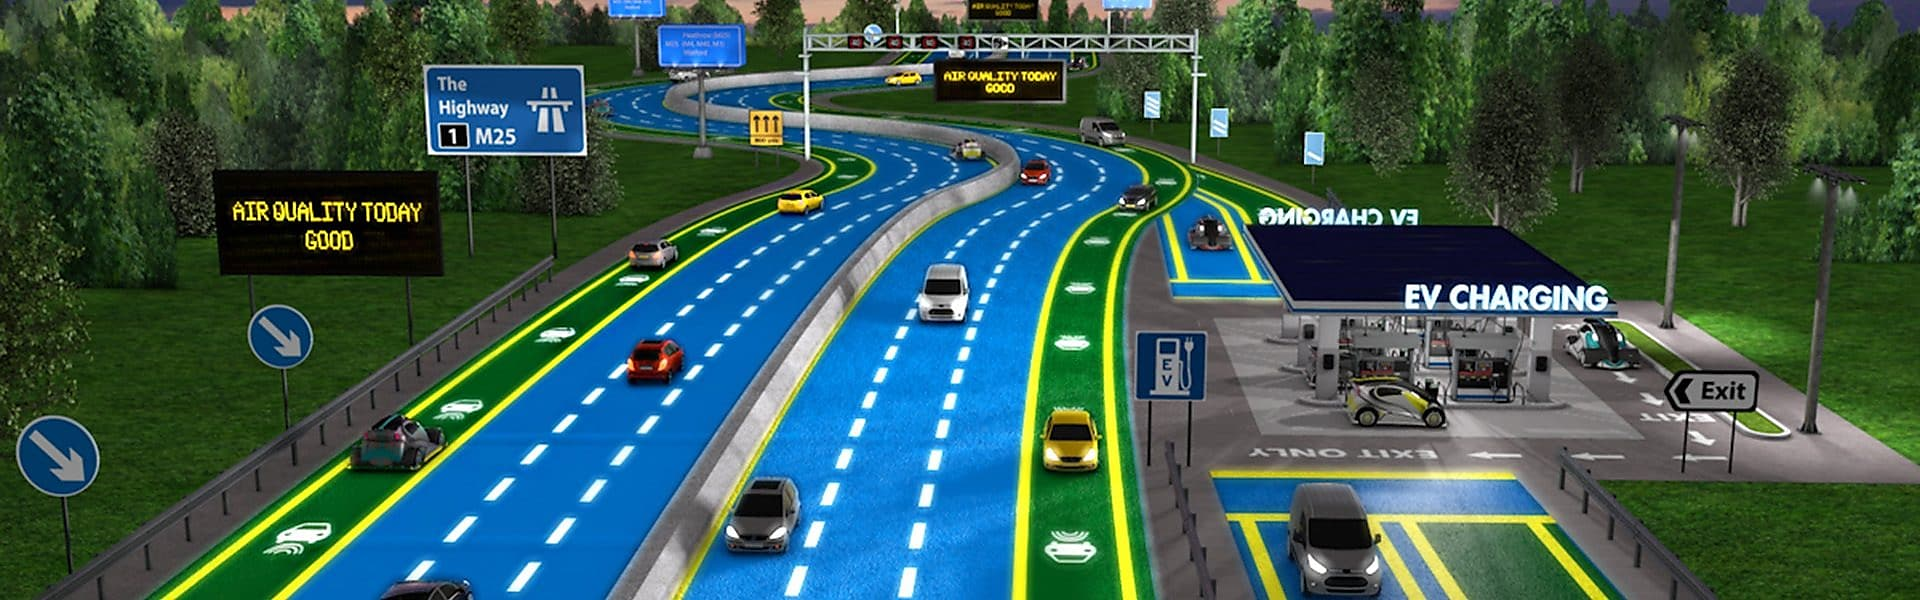 Graphic depiction of the roads of the future